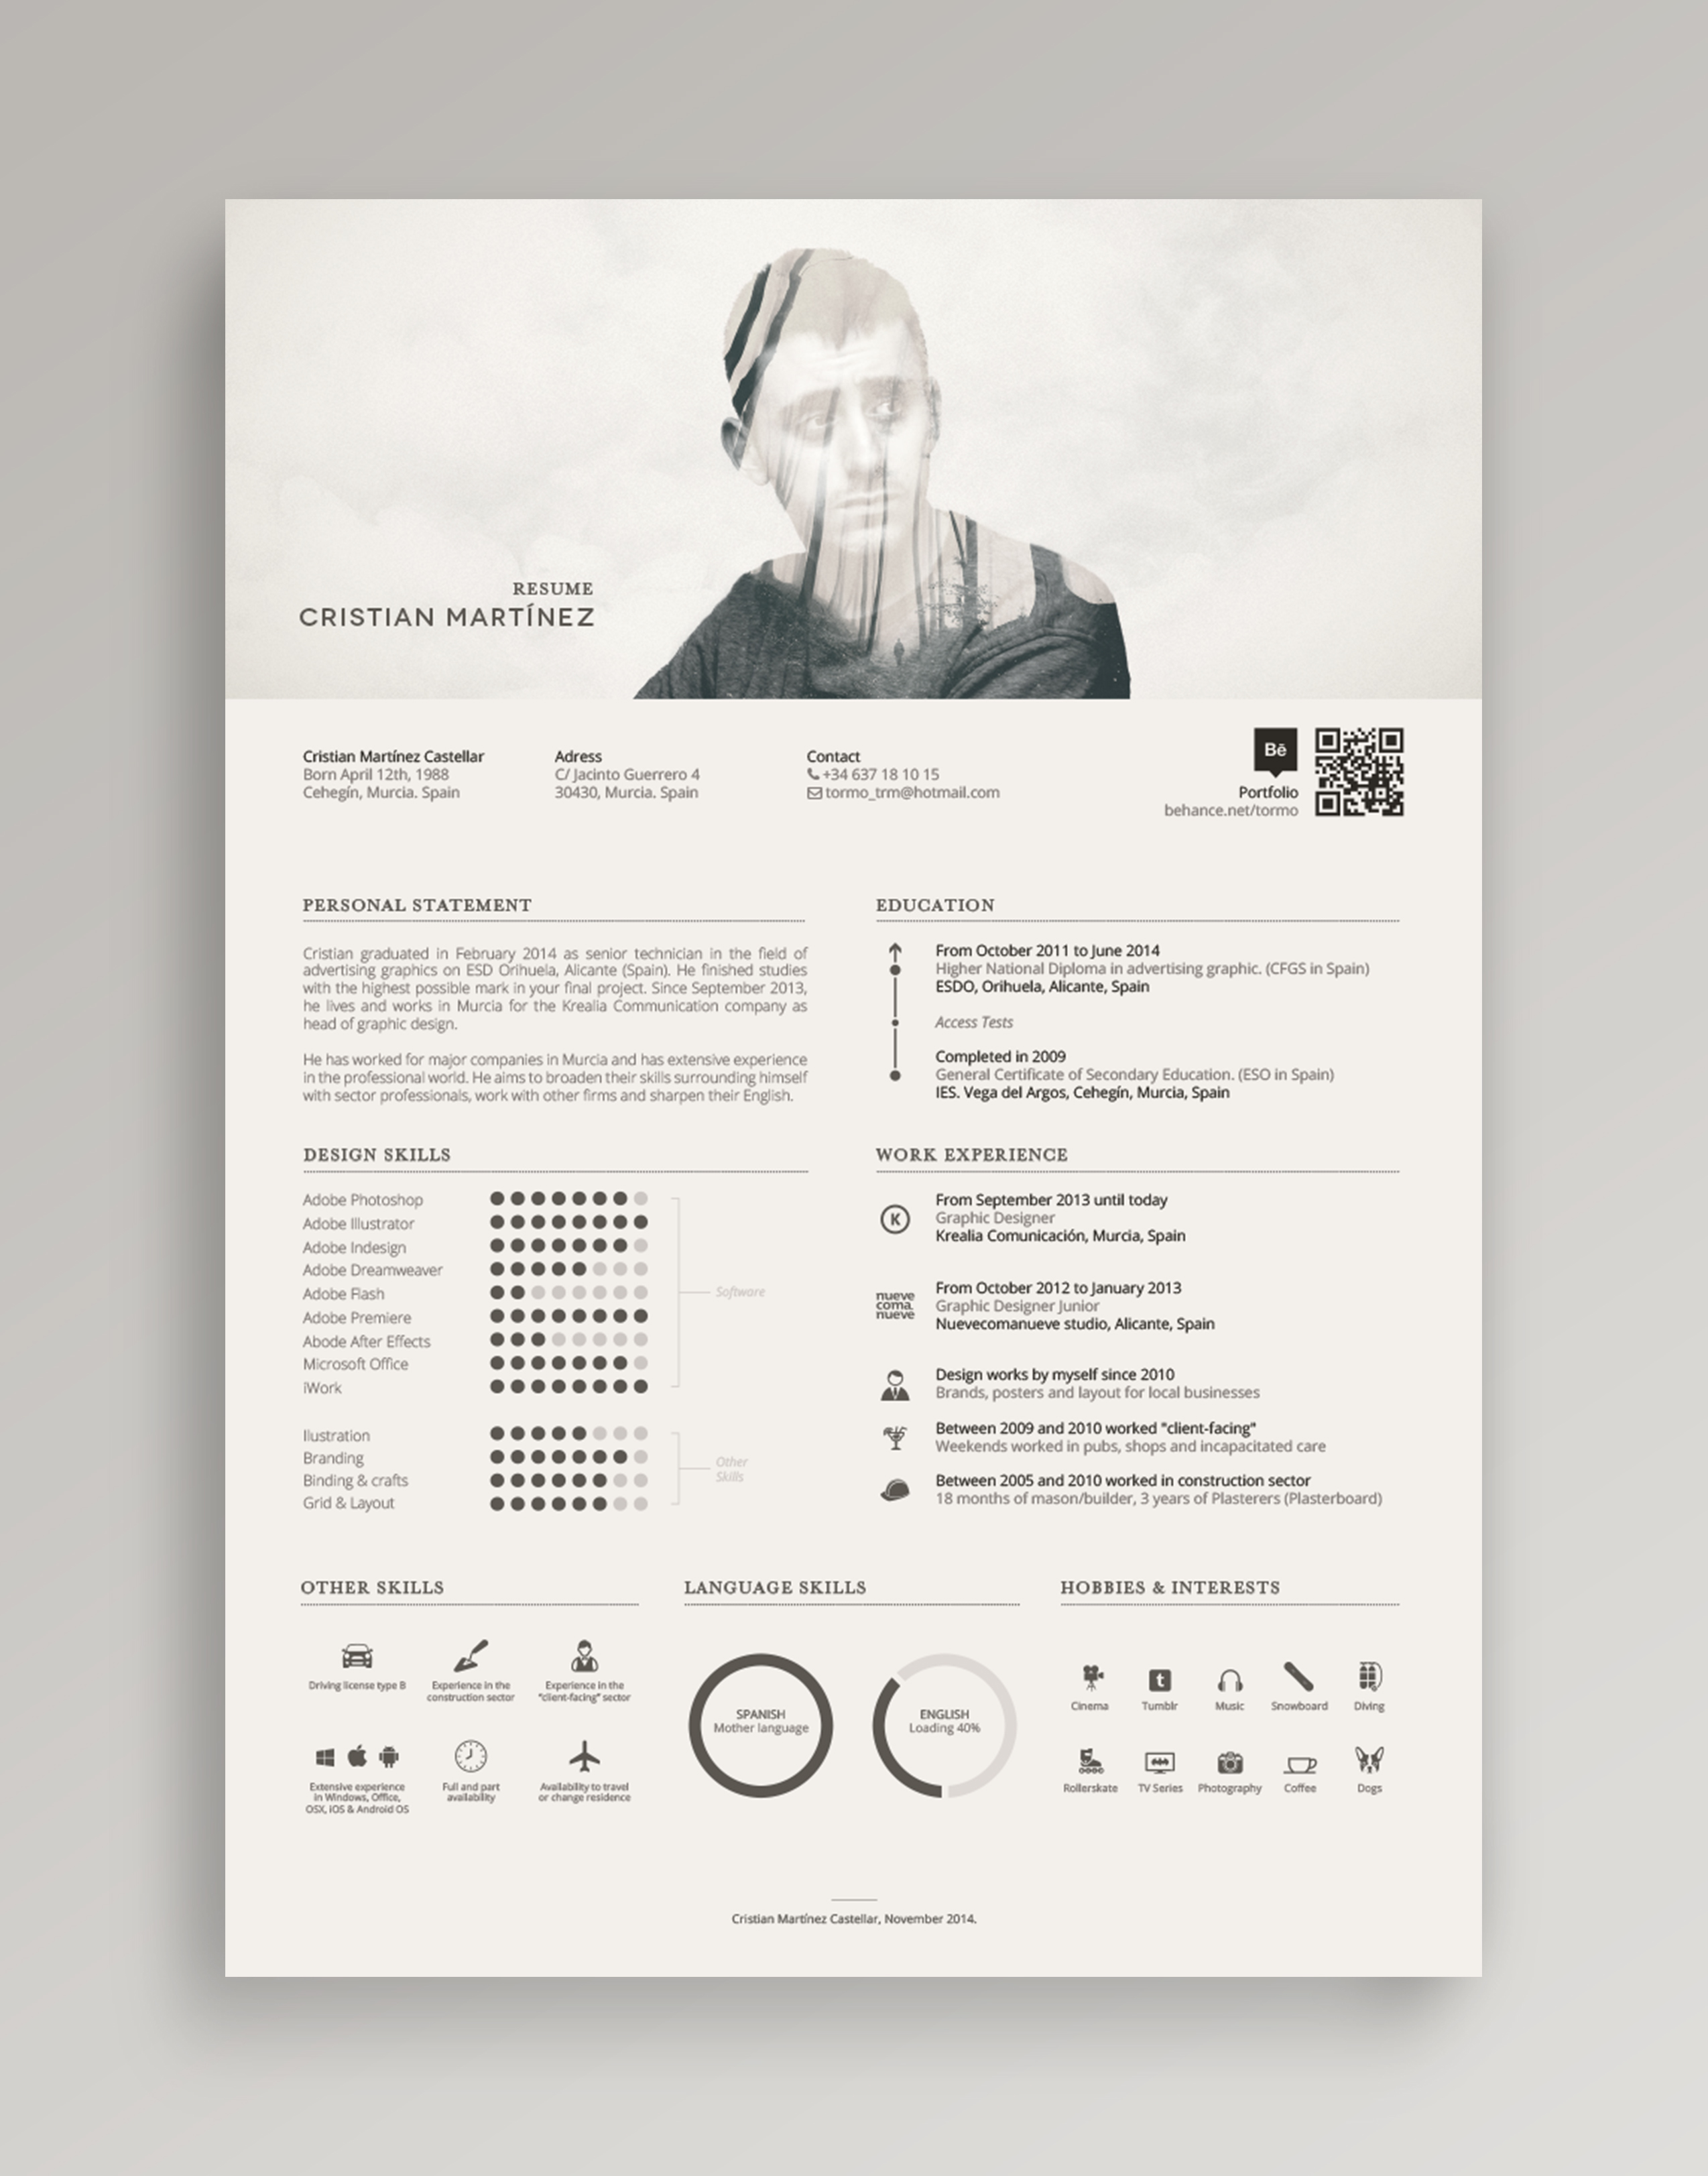 Resume Curriculum Vitae on Behance